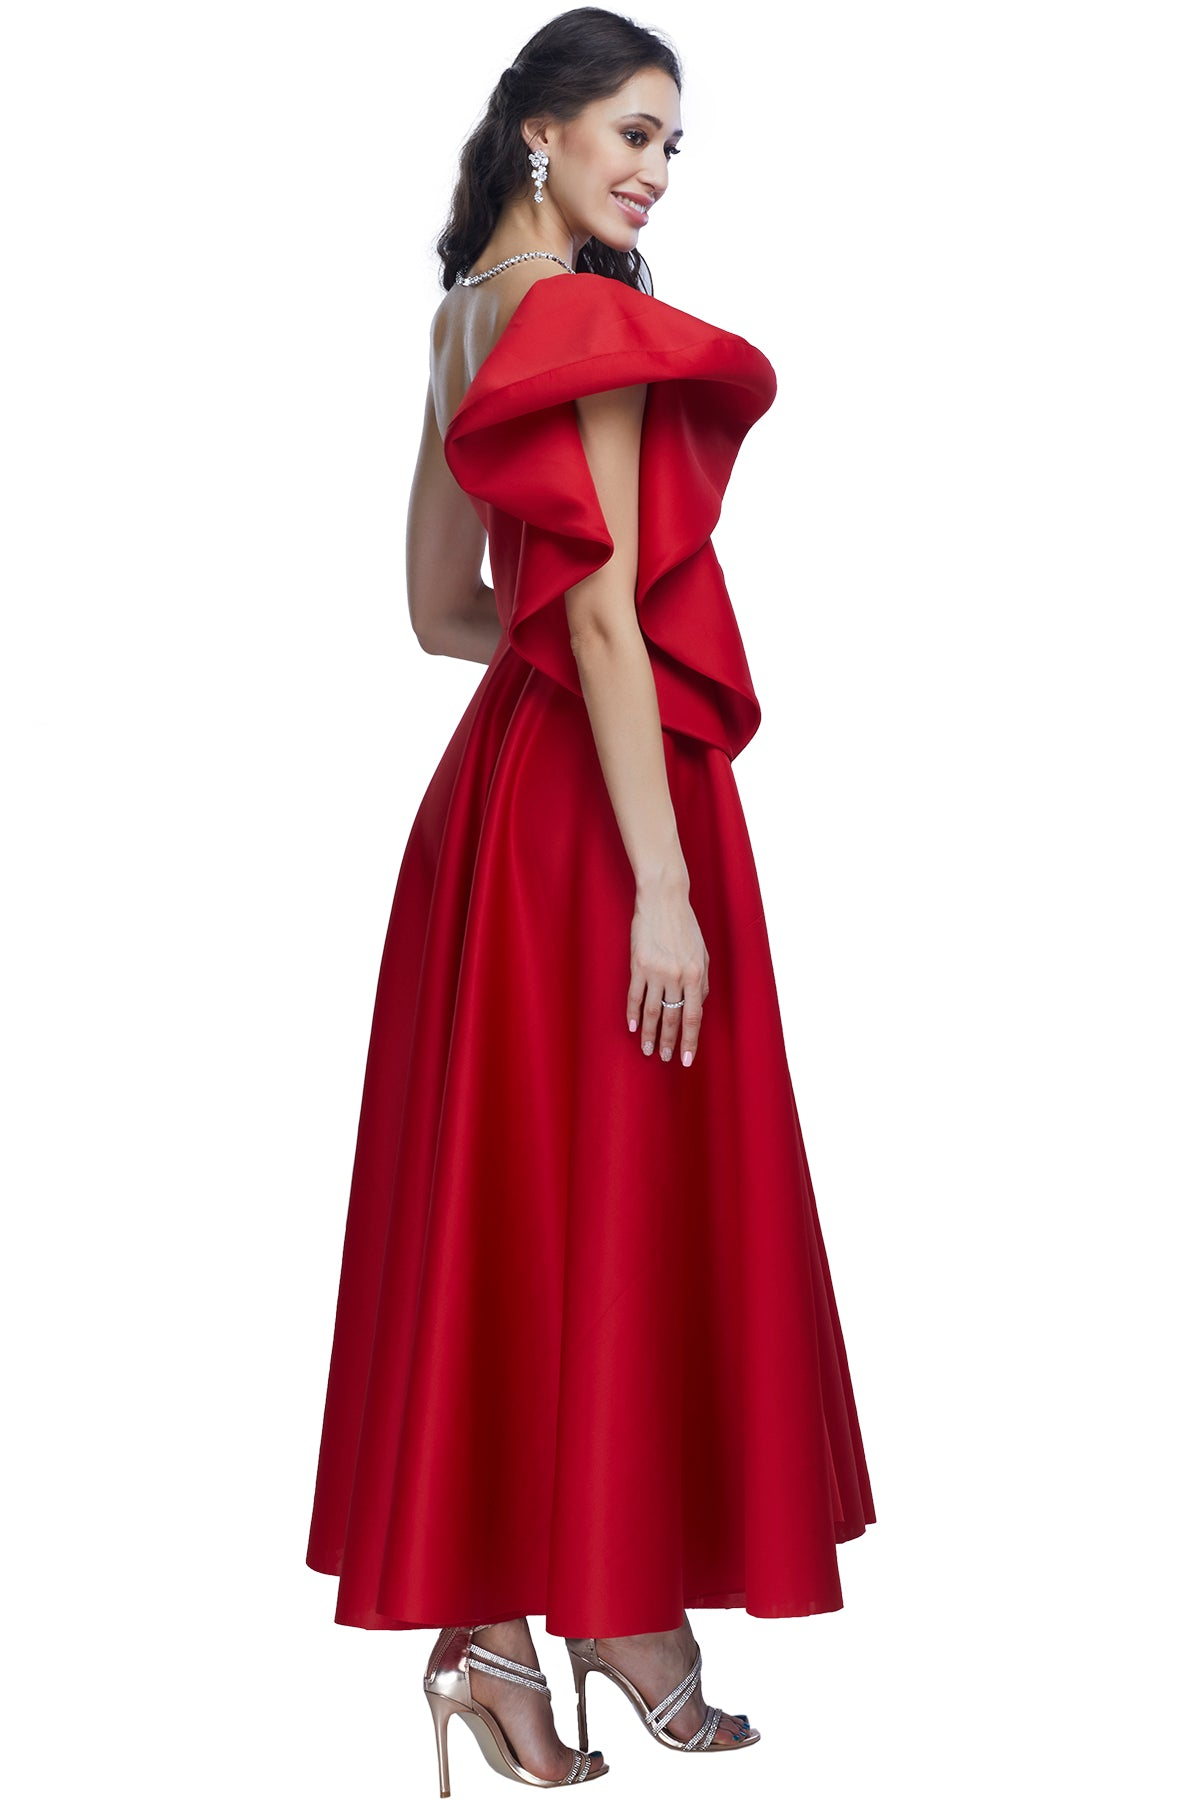 Red one shoulder gown